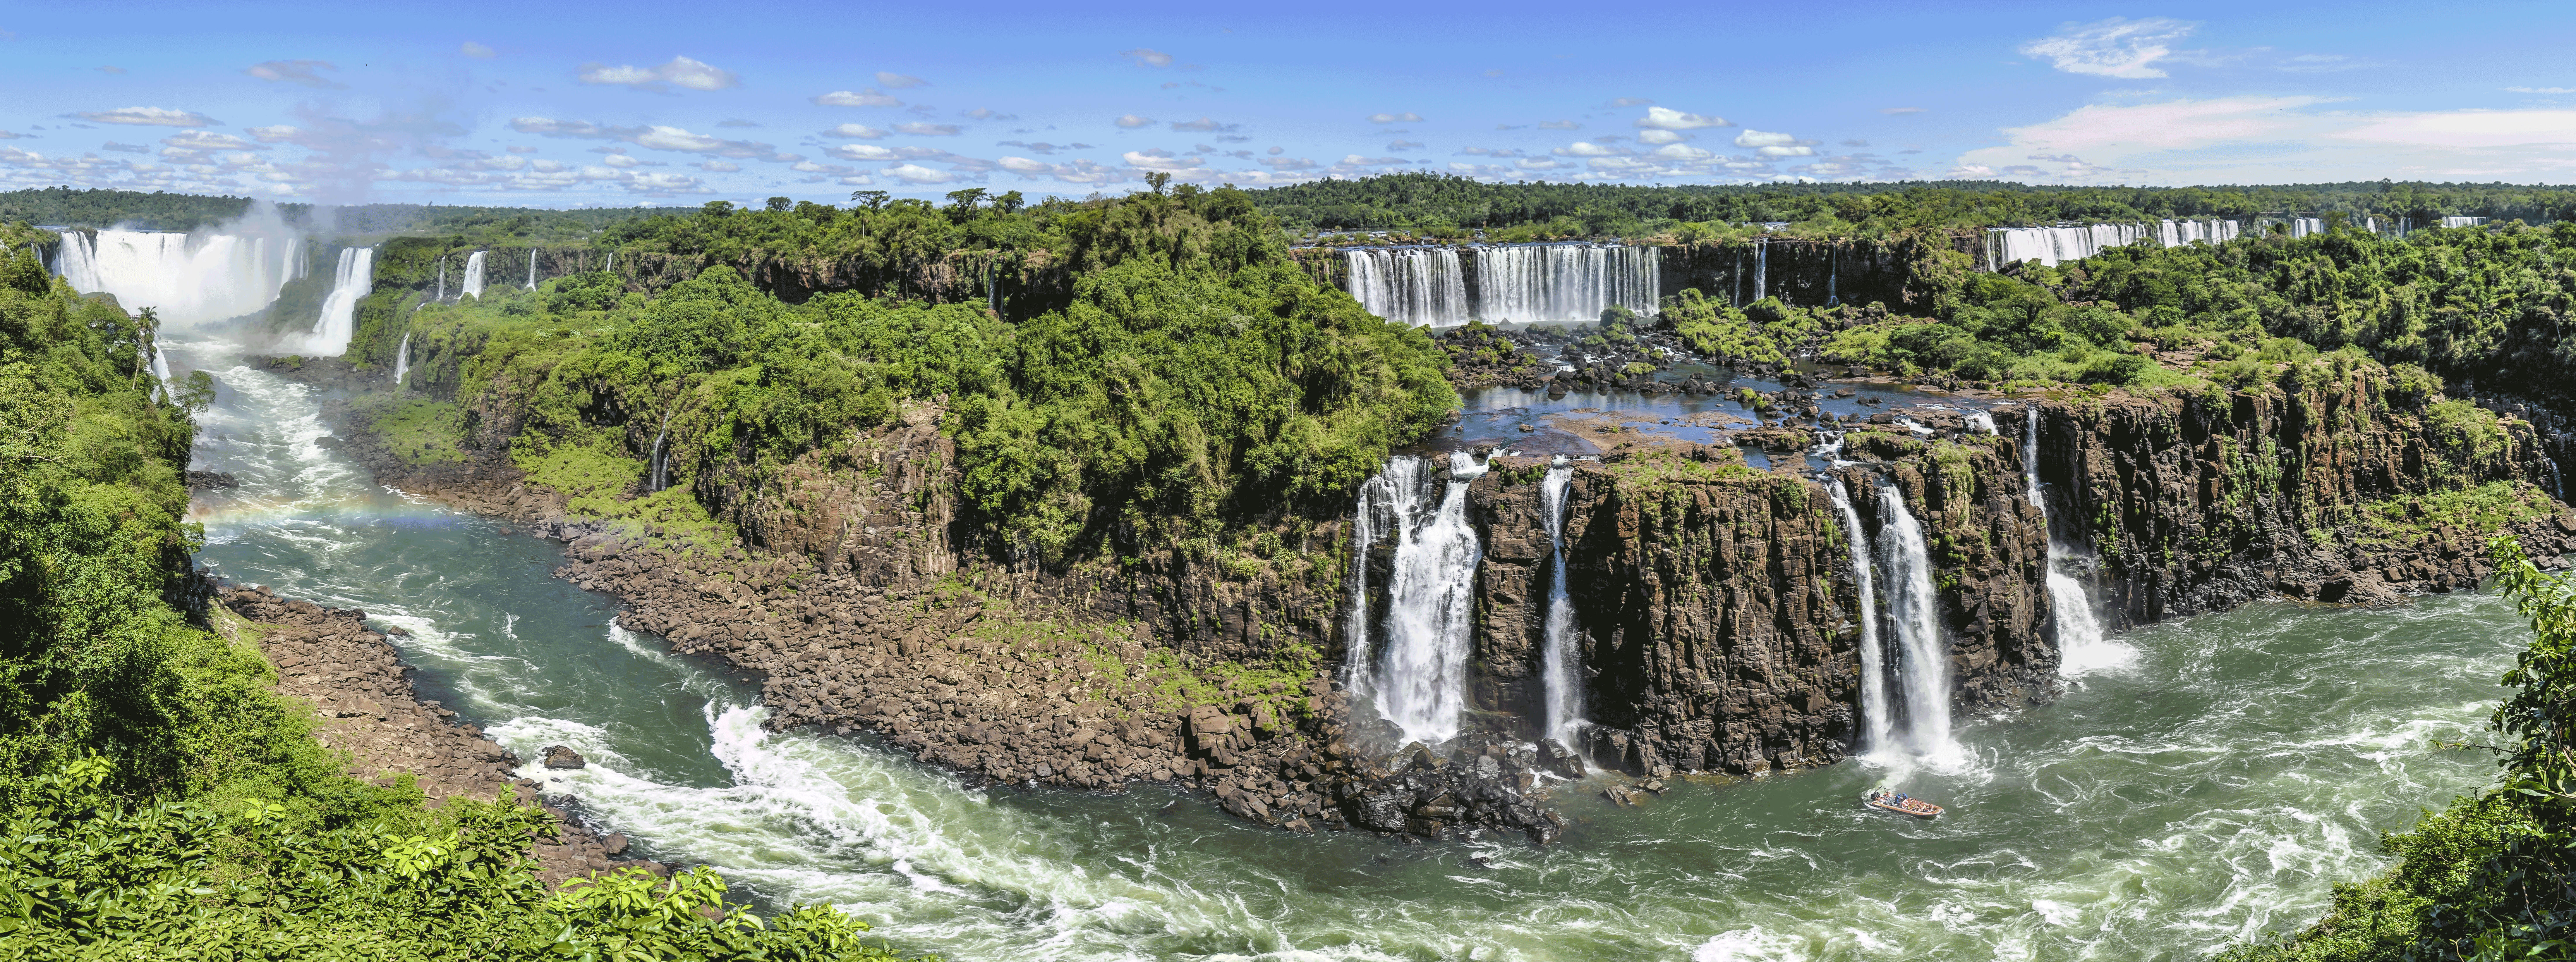 /resource/Images/southamerica/argentina/headerimage/Iguazu-falls-view-from-Argentina2.png